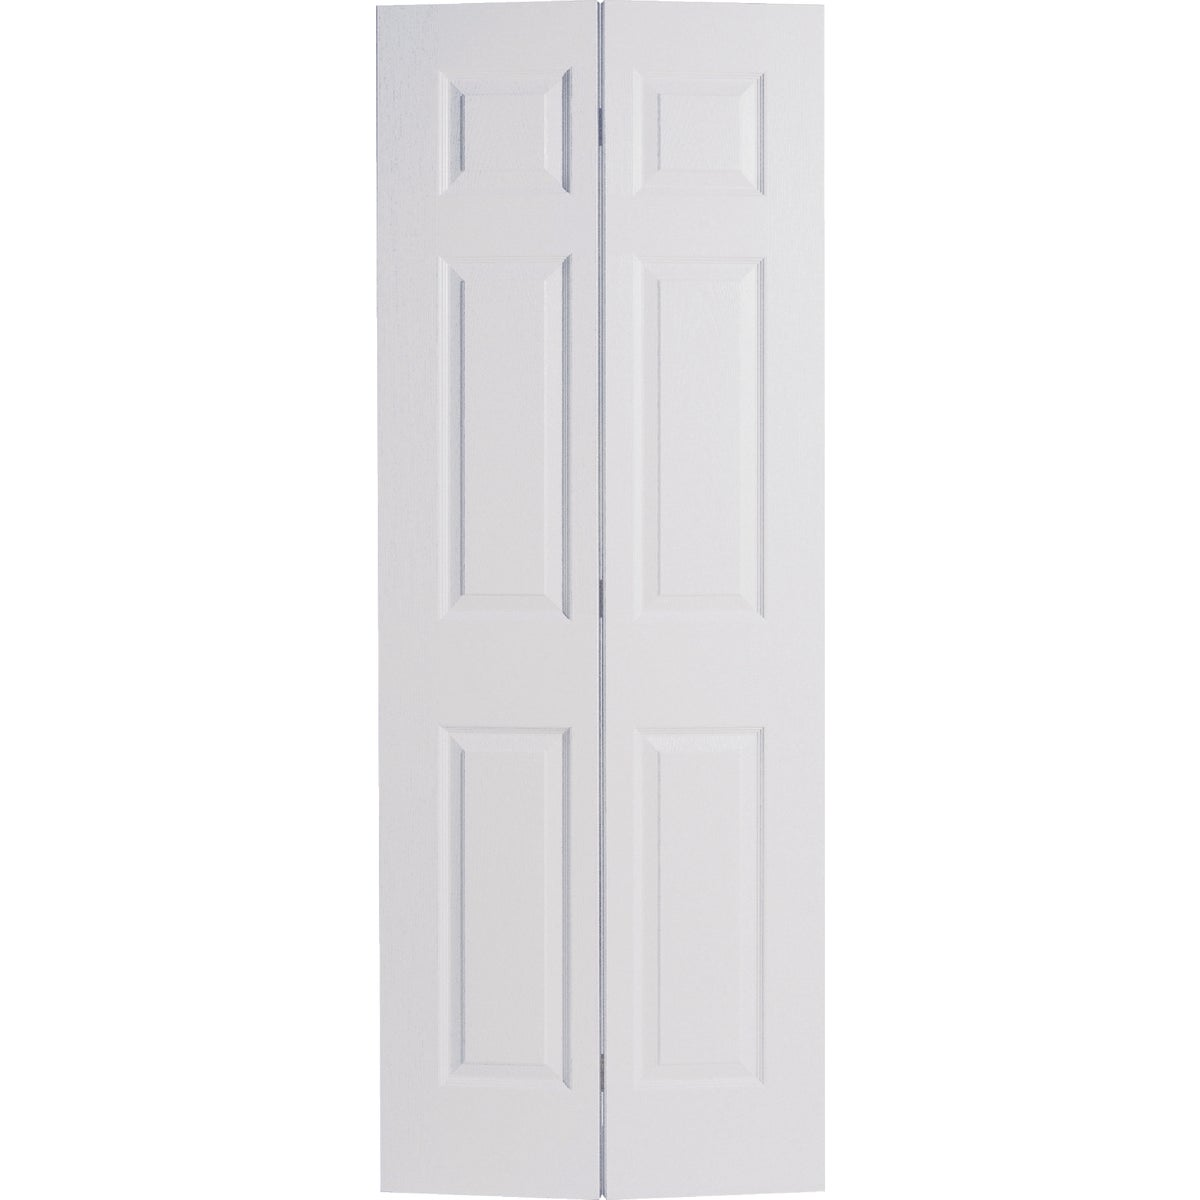 2/6 1-3/8 6PN TX BF DOOR -  by Masonite